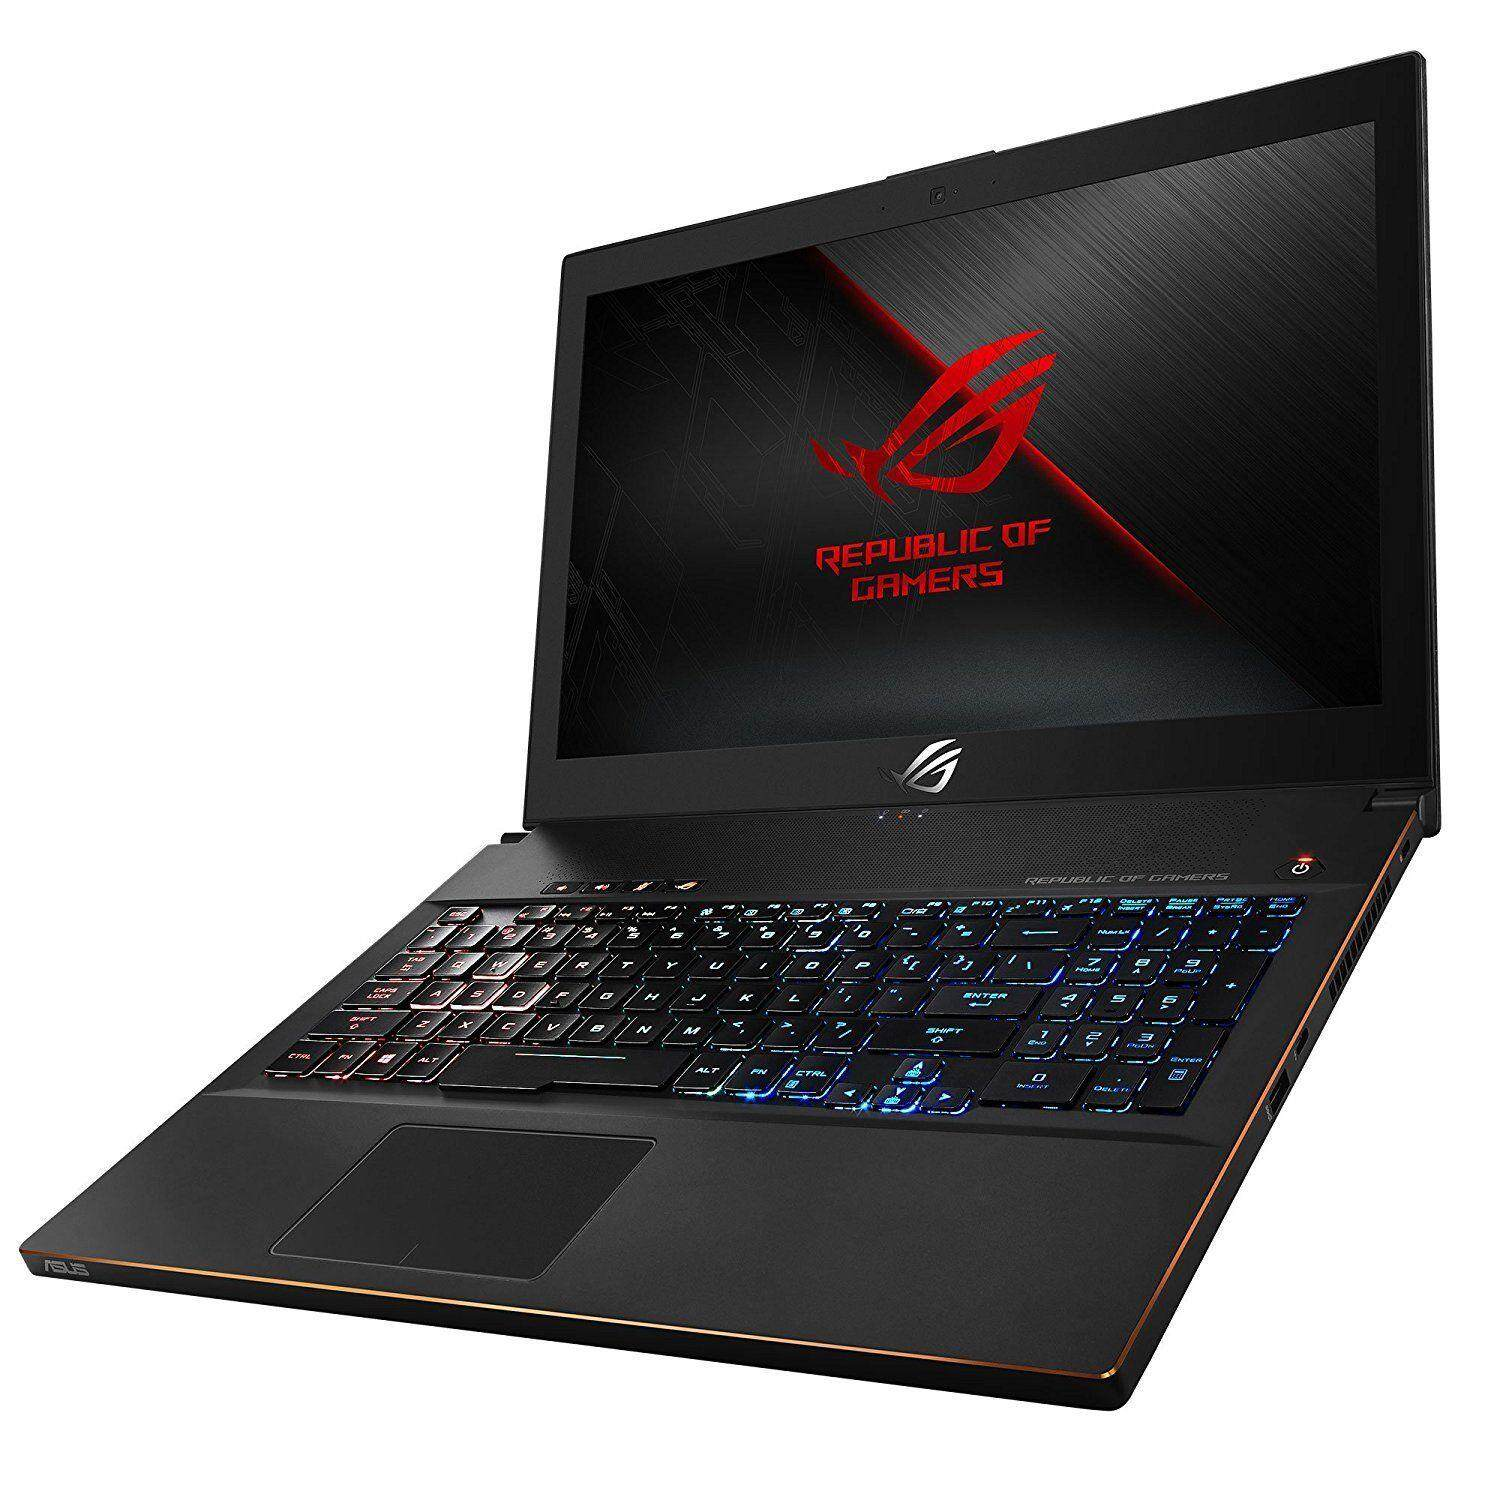 [BLACK OPS] Asus ROG Zephyrus M GM501G-SEI006T 15.6 Gaming Laptop (i7-8750H, 16GB, 256GB SSD + 1TB HDD, NV GTX1070 8GB, W10H) Malaysia